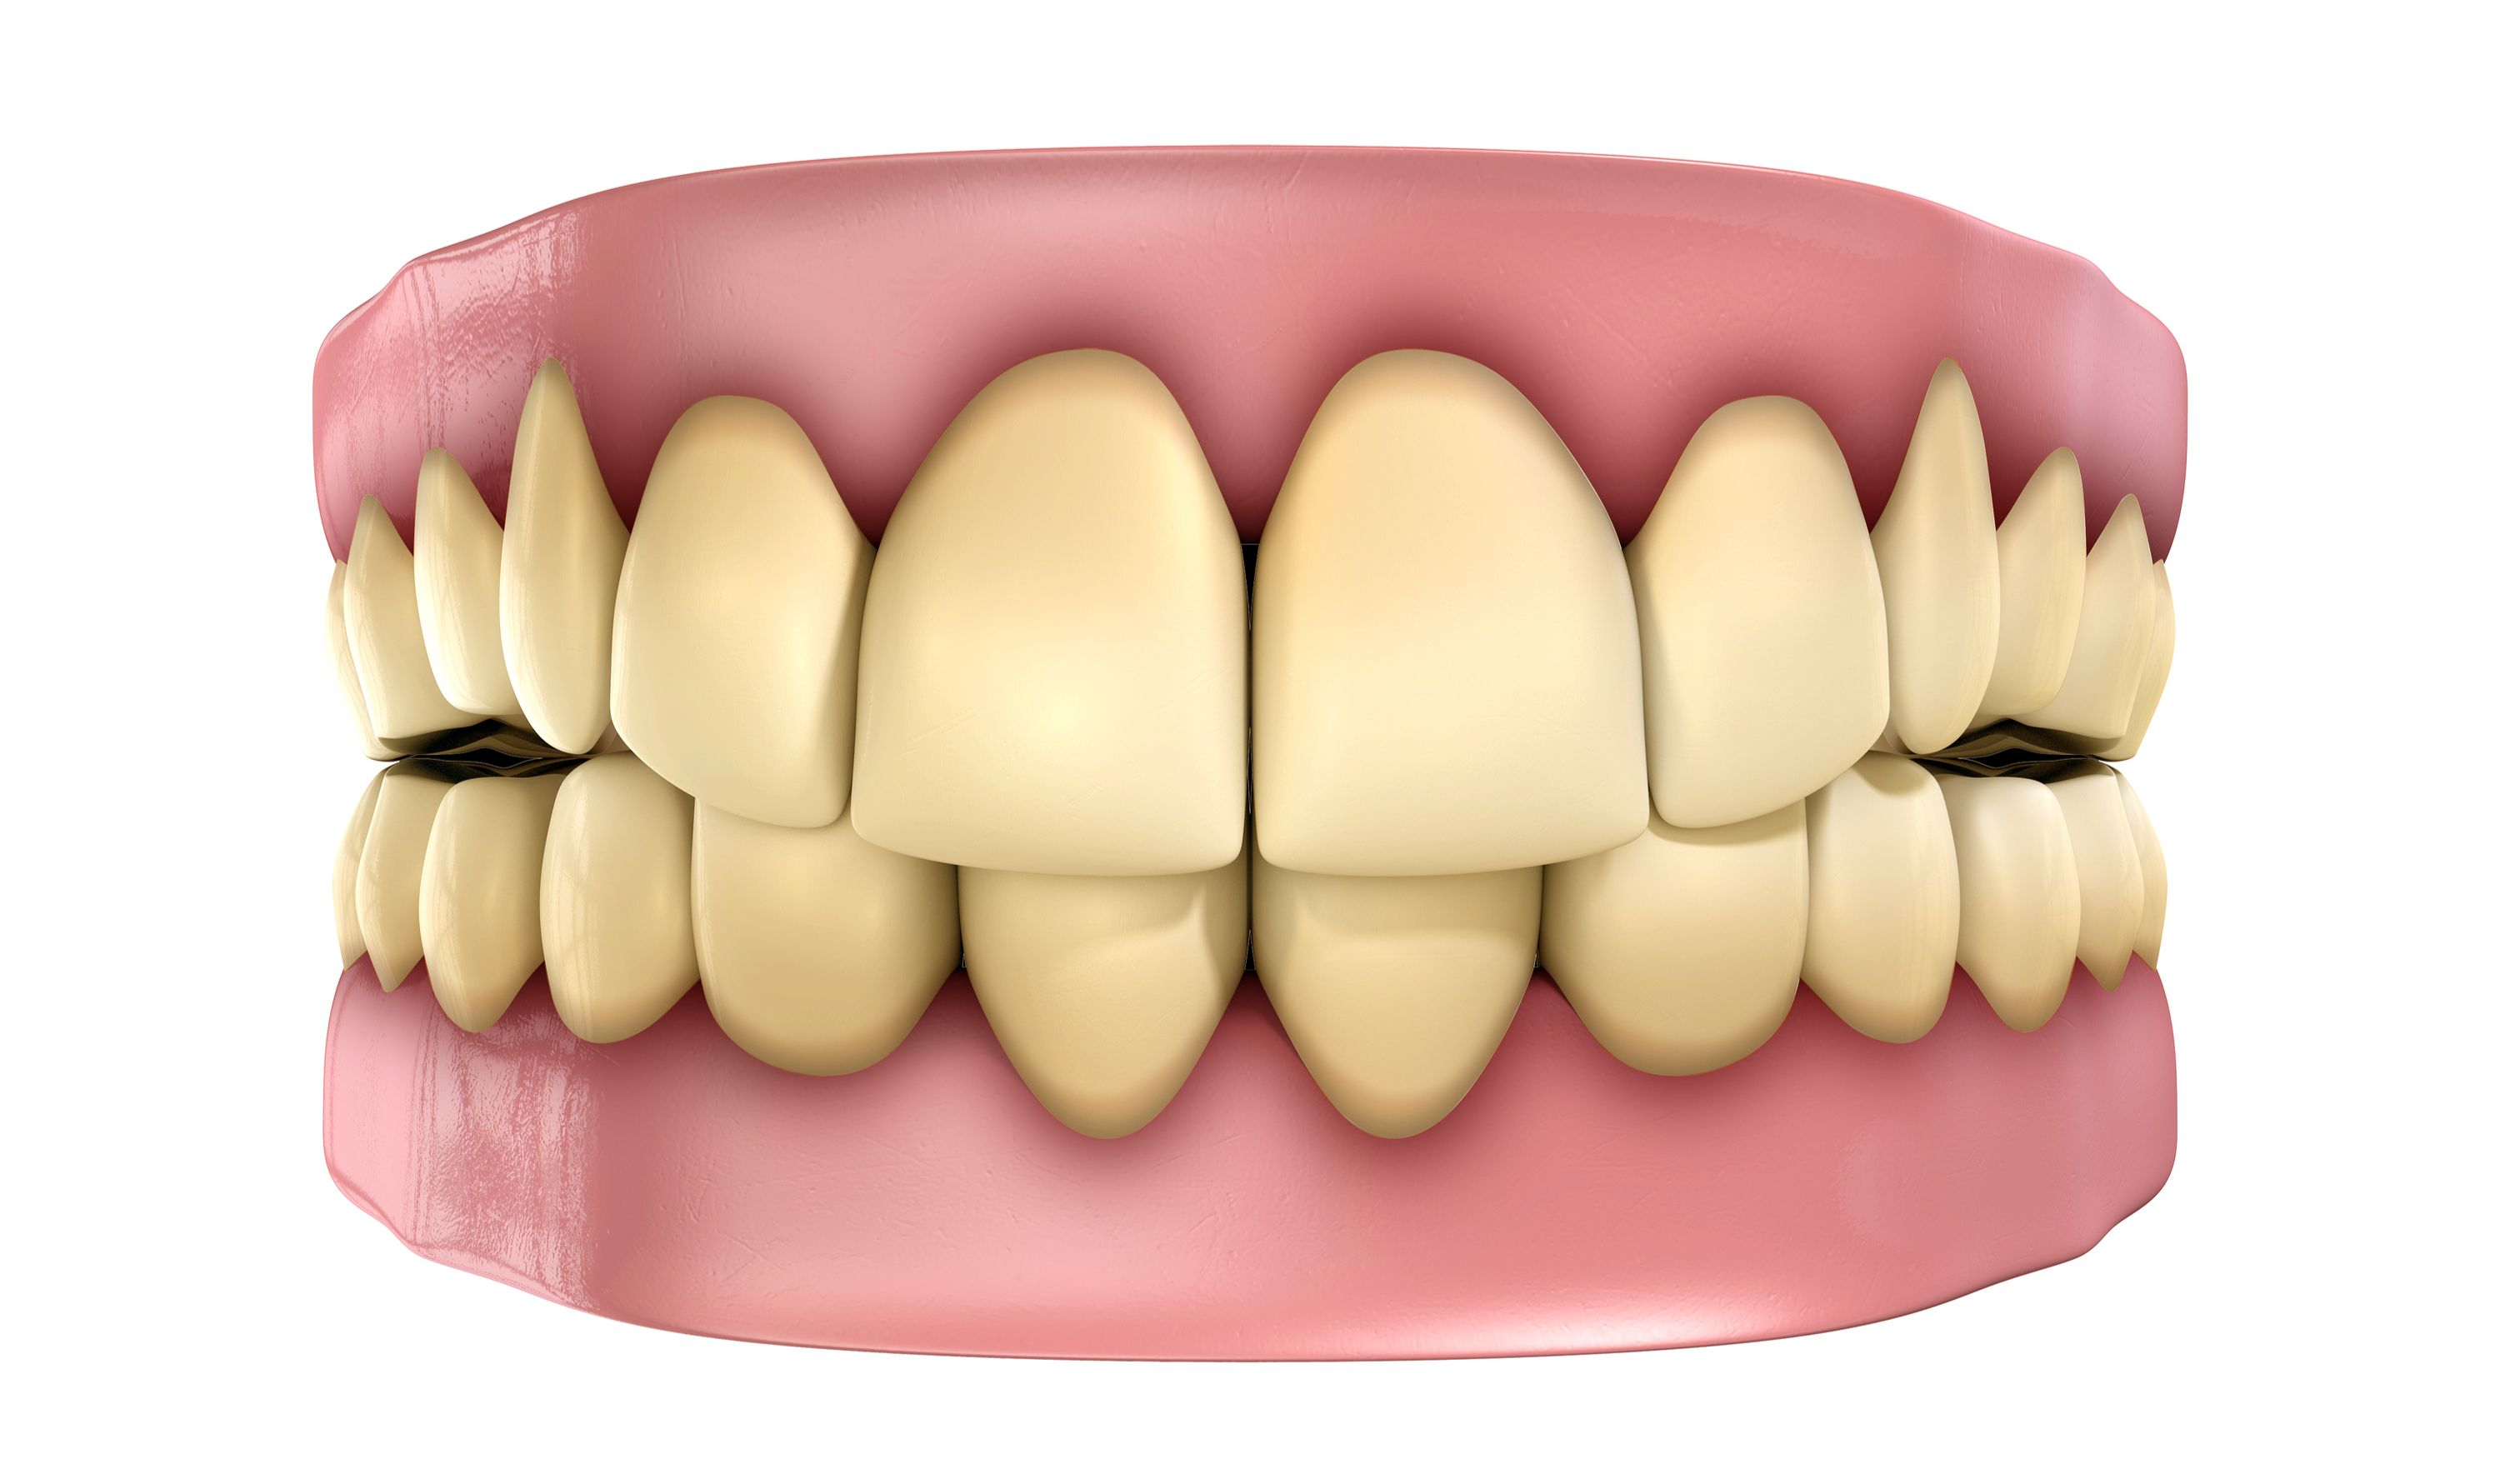 Graphic of yellow, discolored teeth